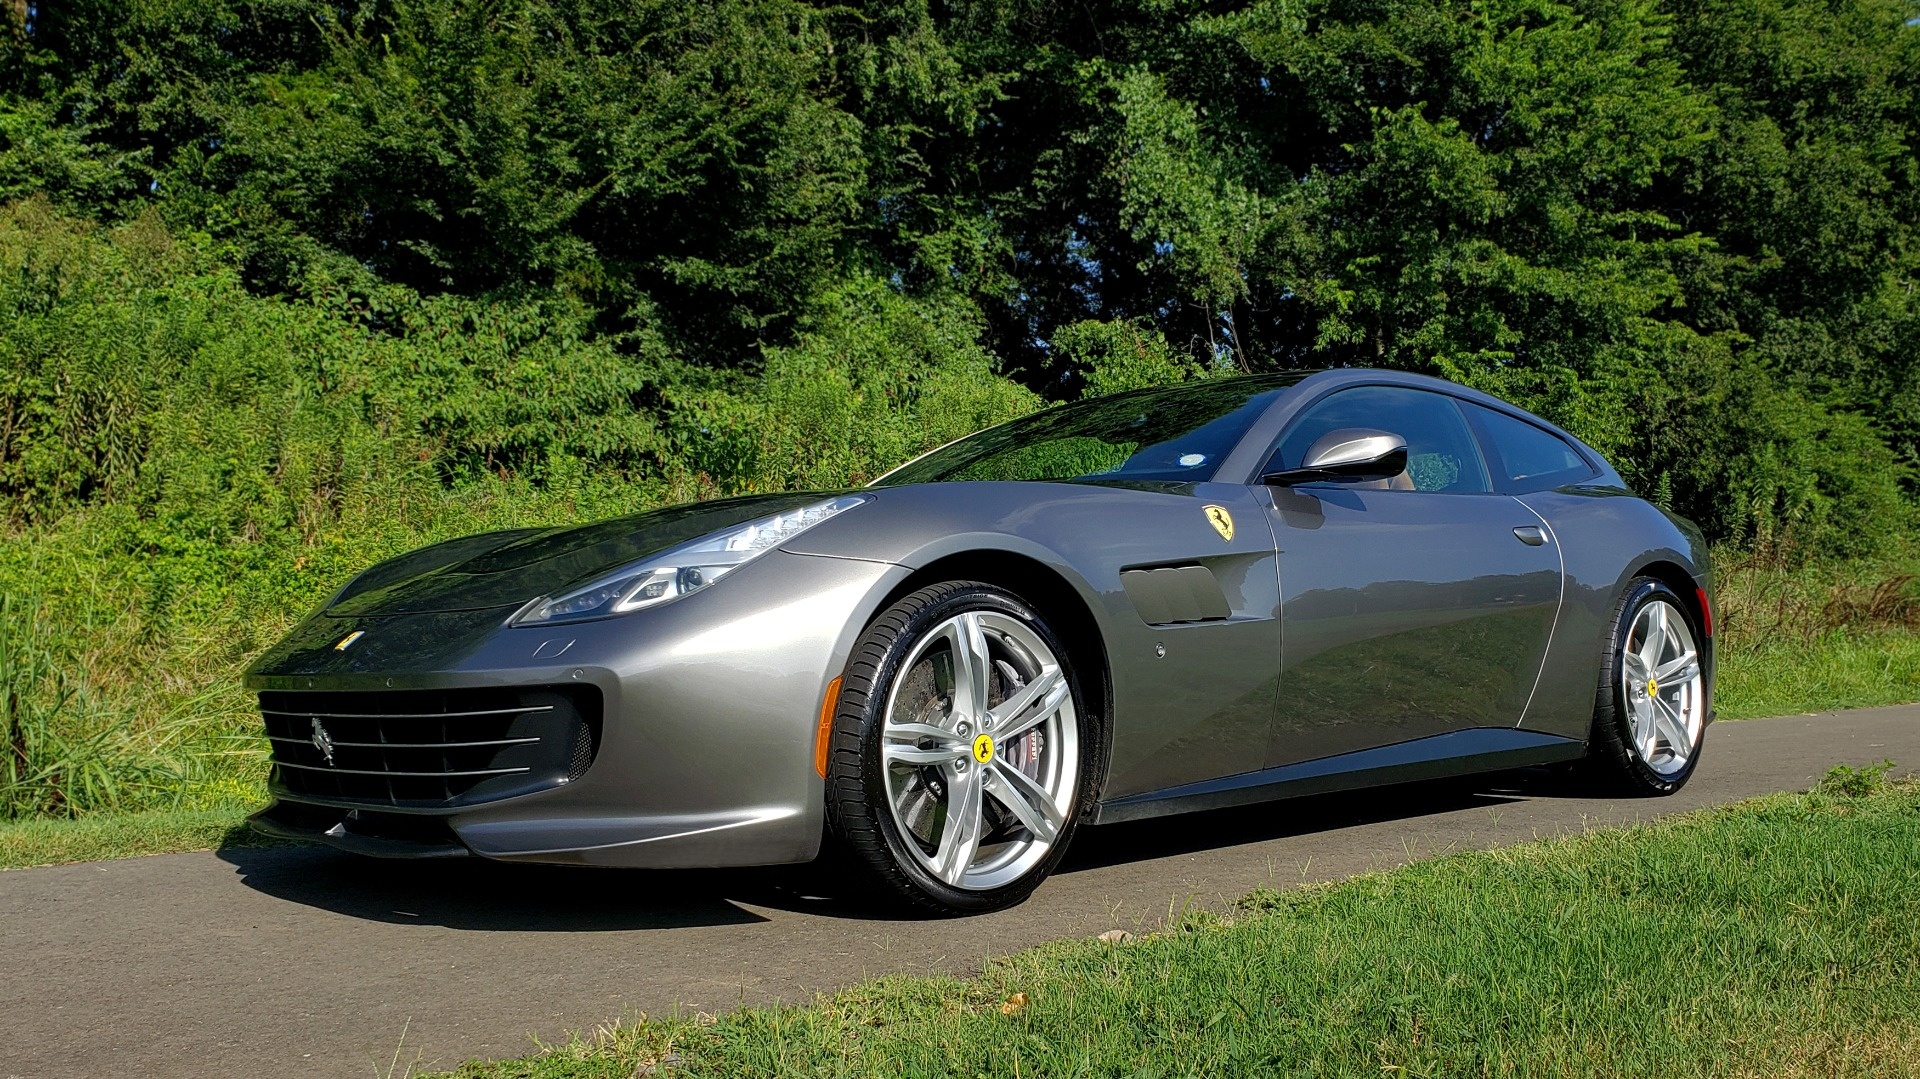 Used 2017 Ferrari GTC4 LUSSO AWD / PANO-ROOF / APPLE CAR PLAY / SUSP LIFT / JBL SOUND for sale $188,999 at Formula Imports in Charlotte NC 28227 4